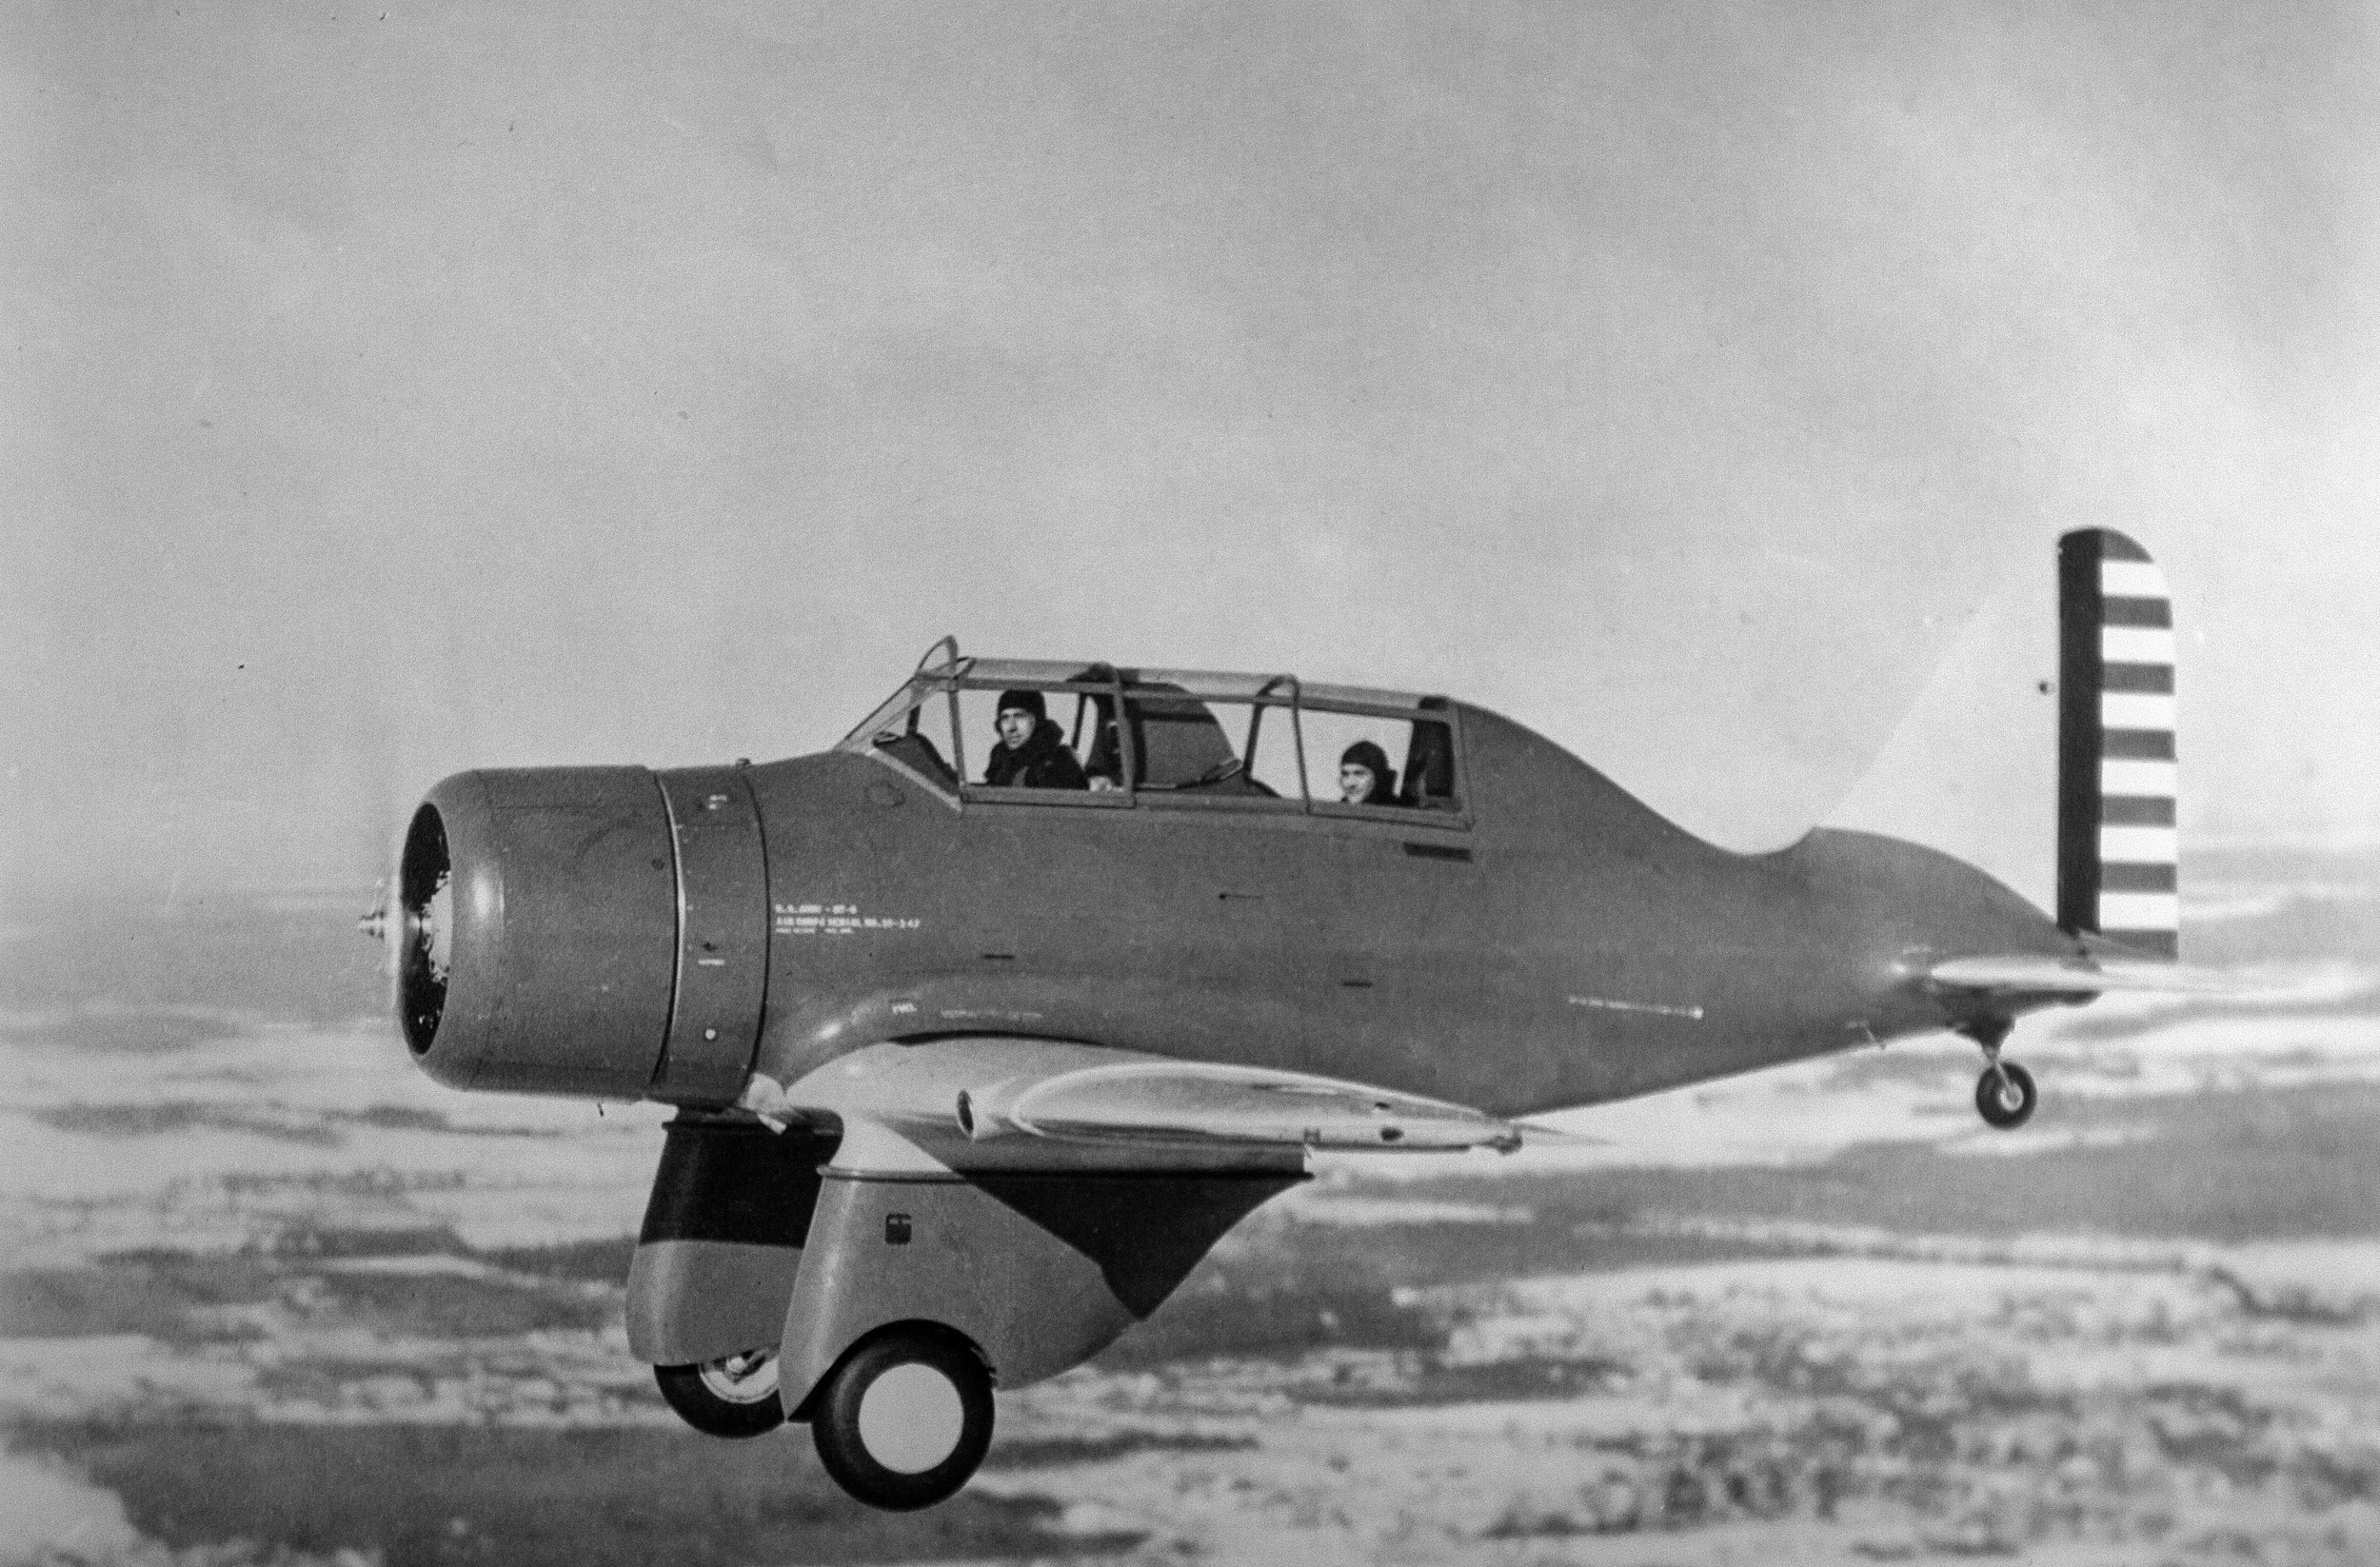 Kartveli and Seversky flying in an early P-35